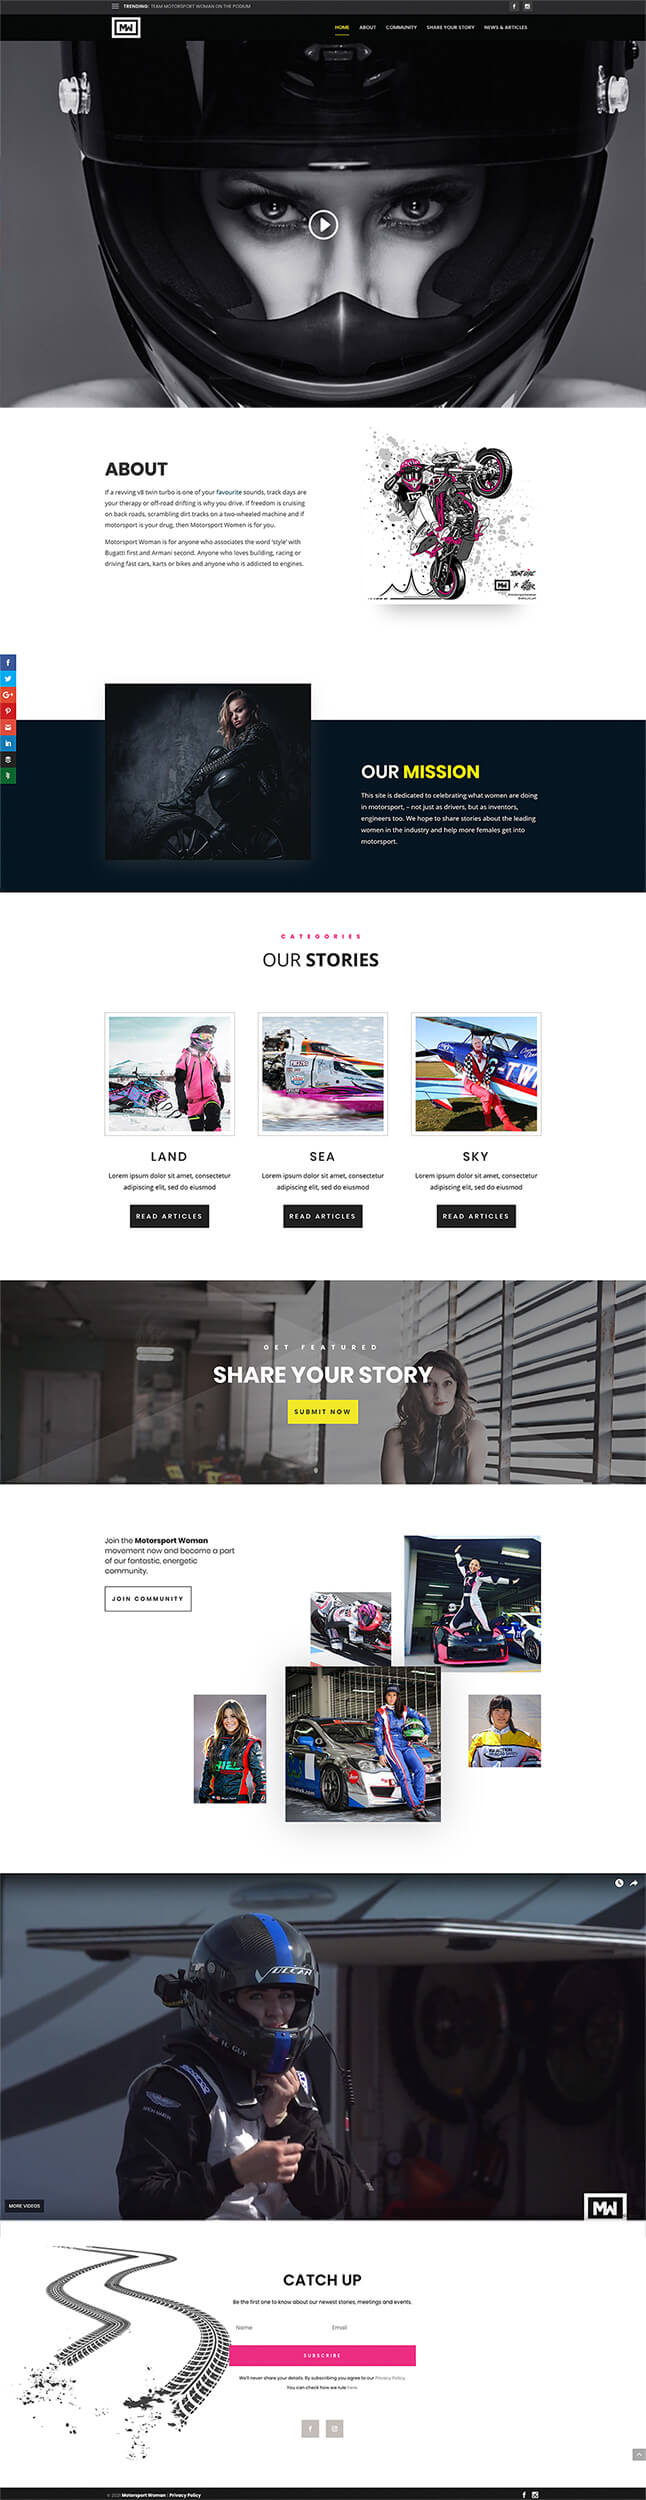 Motorsport Woman - Home Page Design